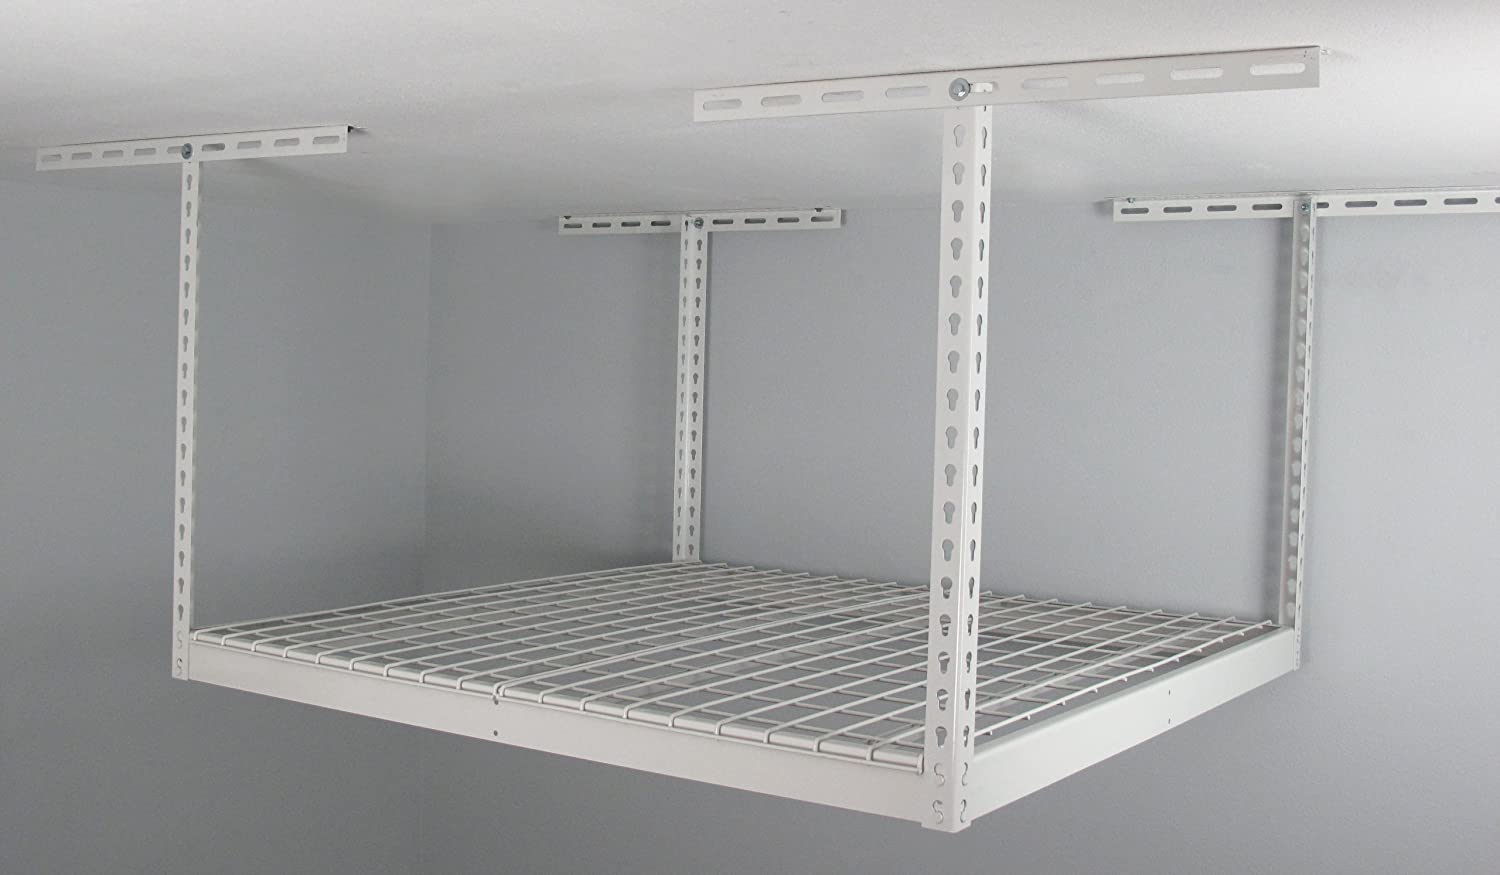 SafeRacks SR 4x4 W 24 Overhead Garage Storage Rack, 4u0027 X 4u0027   Ceiling  Mounted General Purpose Storage Racks   Amazon.com